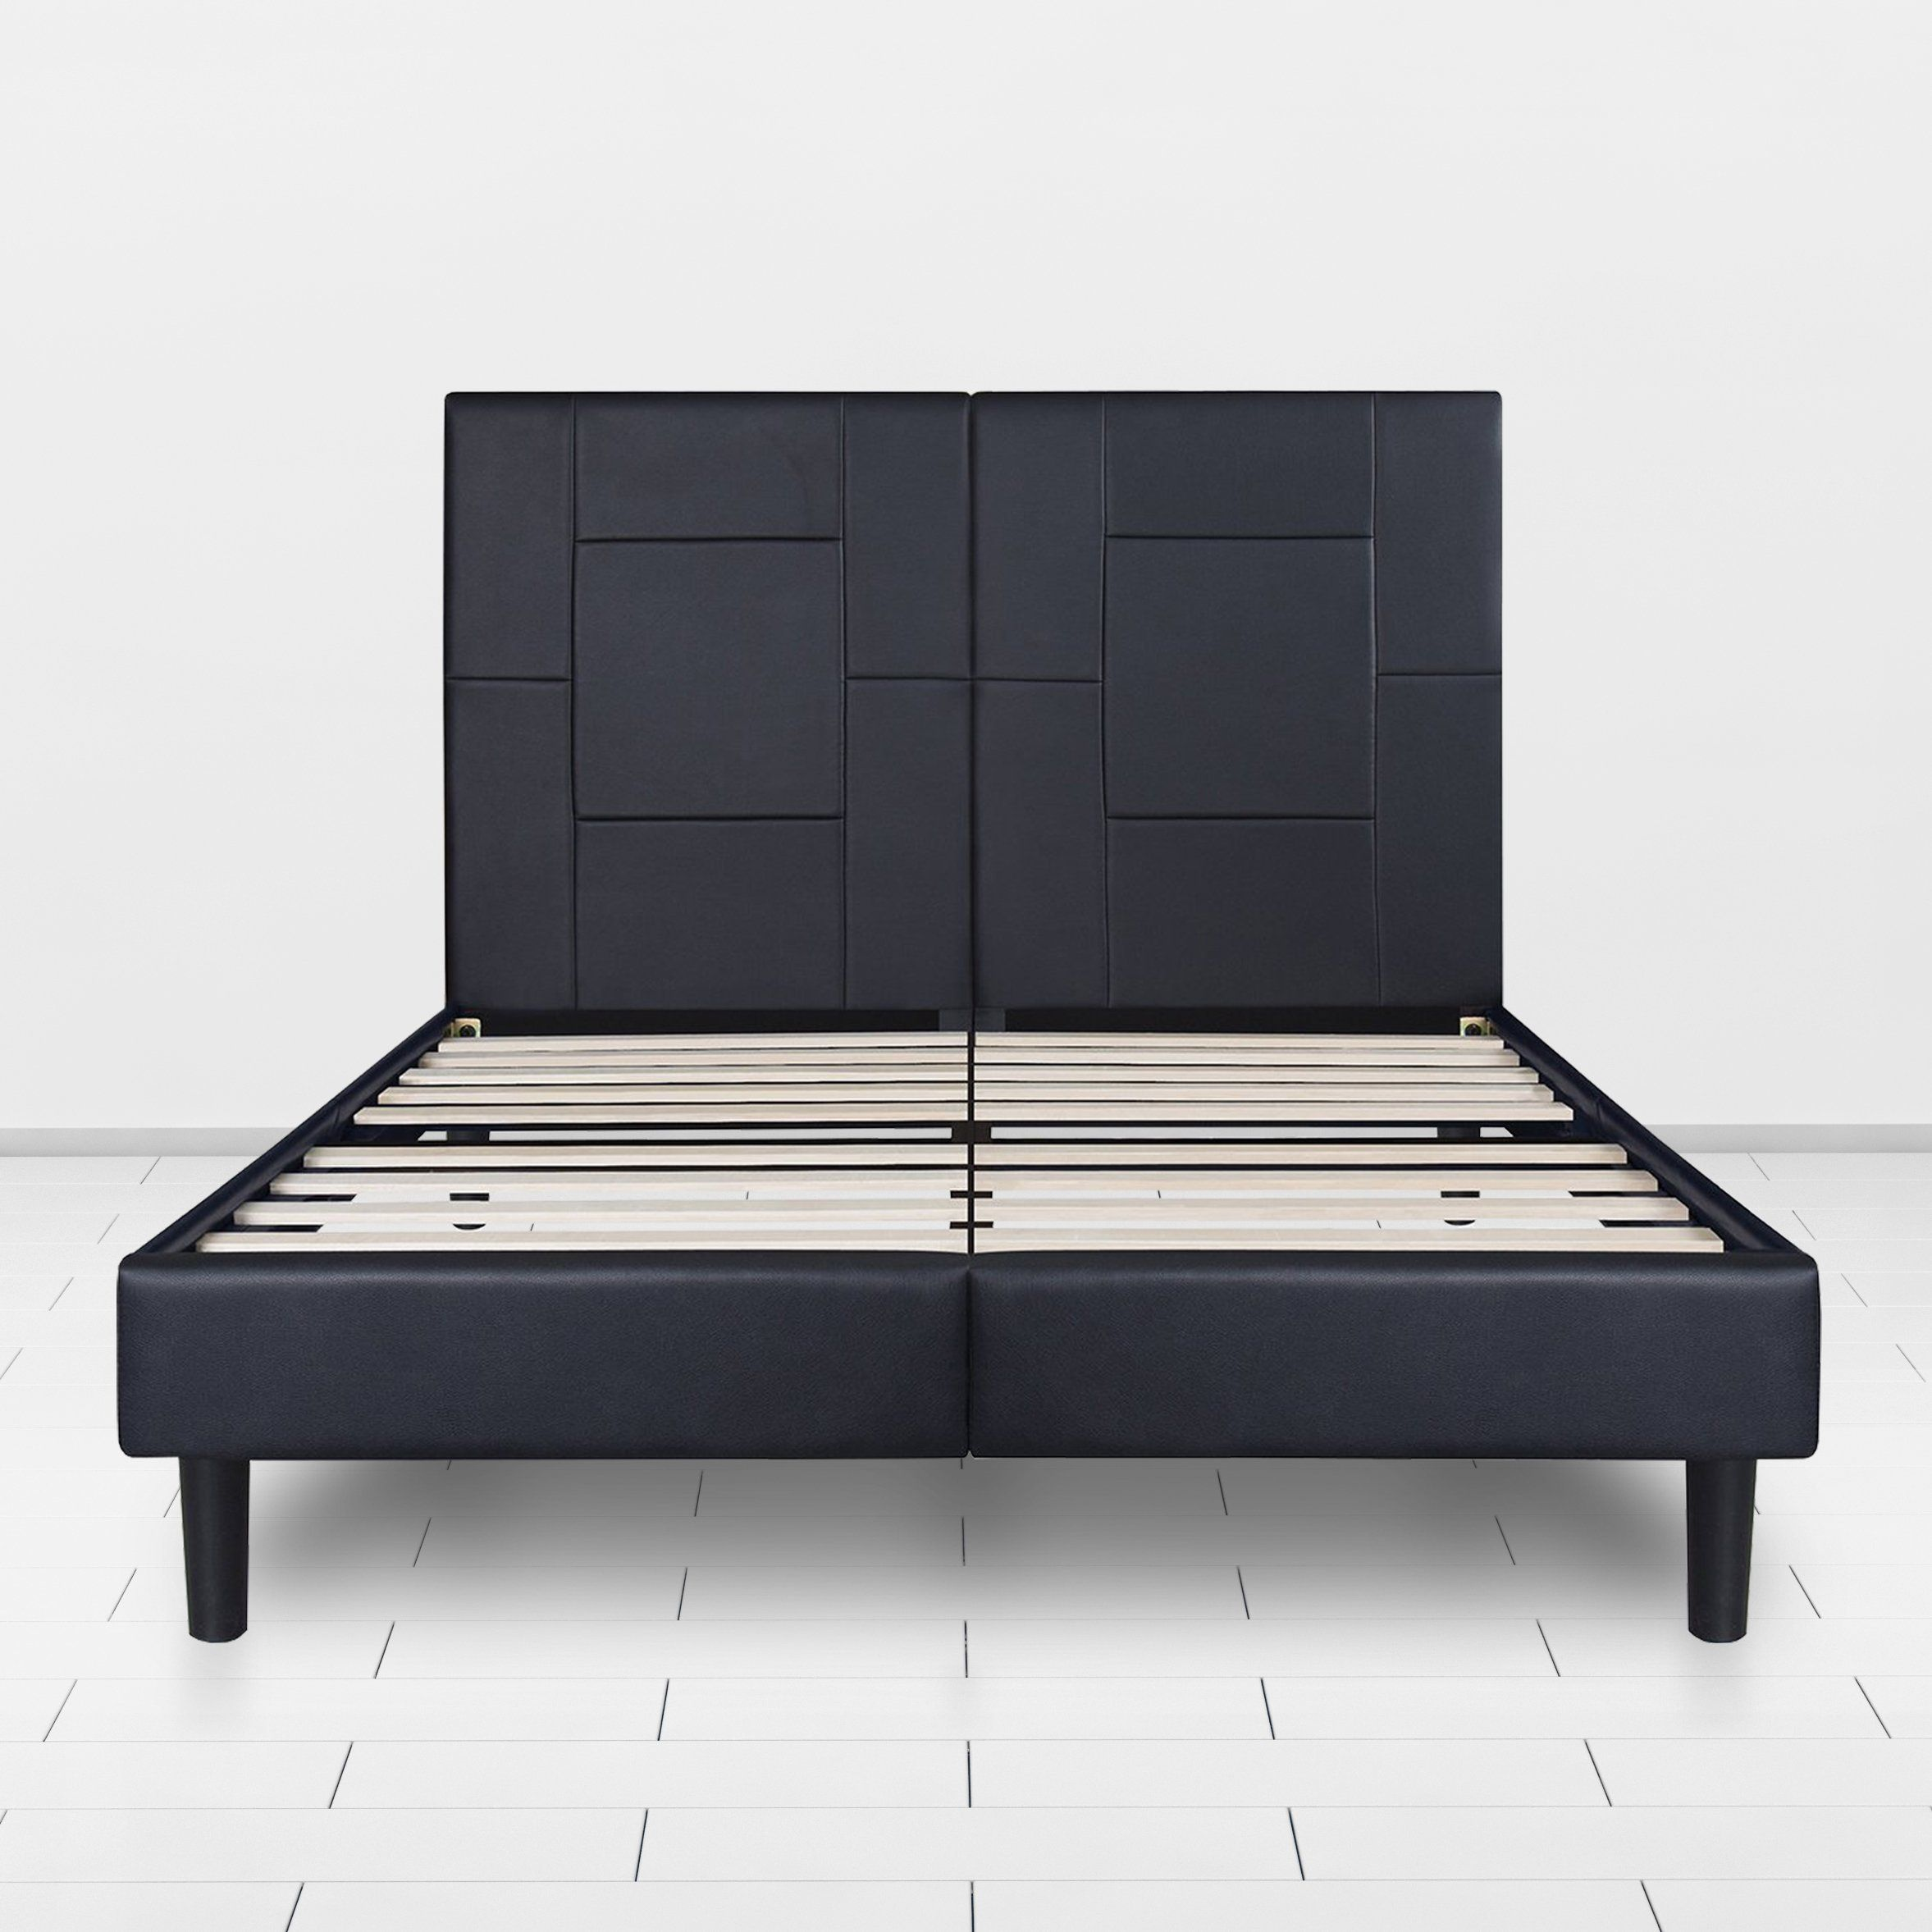 art futons that world arts the japan work times a of futon keeps adept mountain for and play which with our he tsuyoshi thinking ozawa created fiction culture